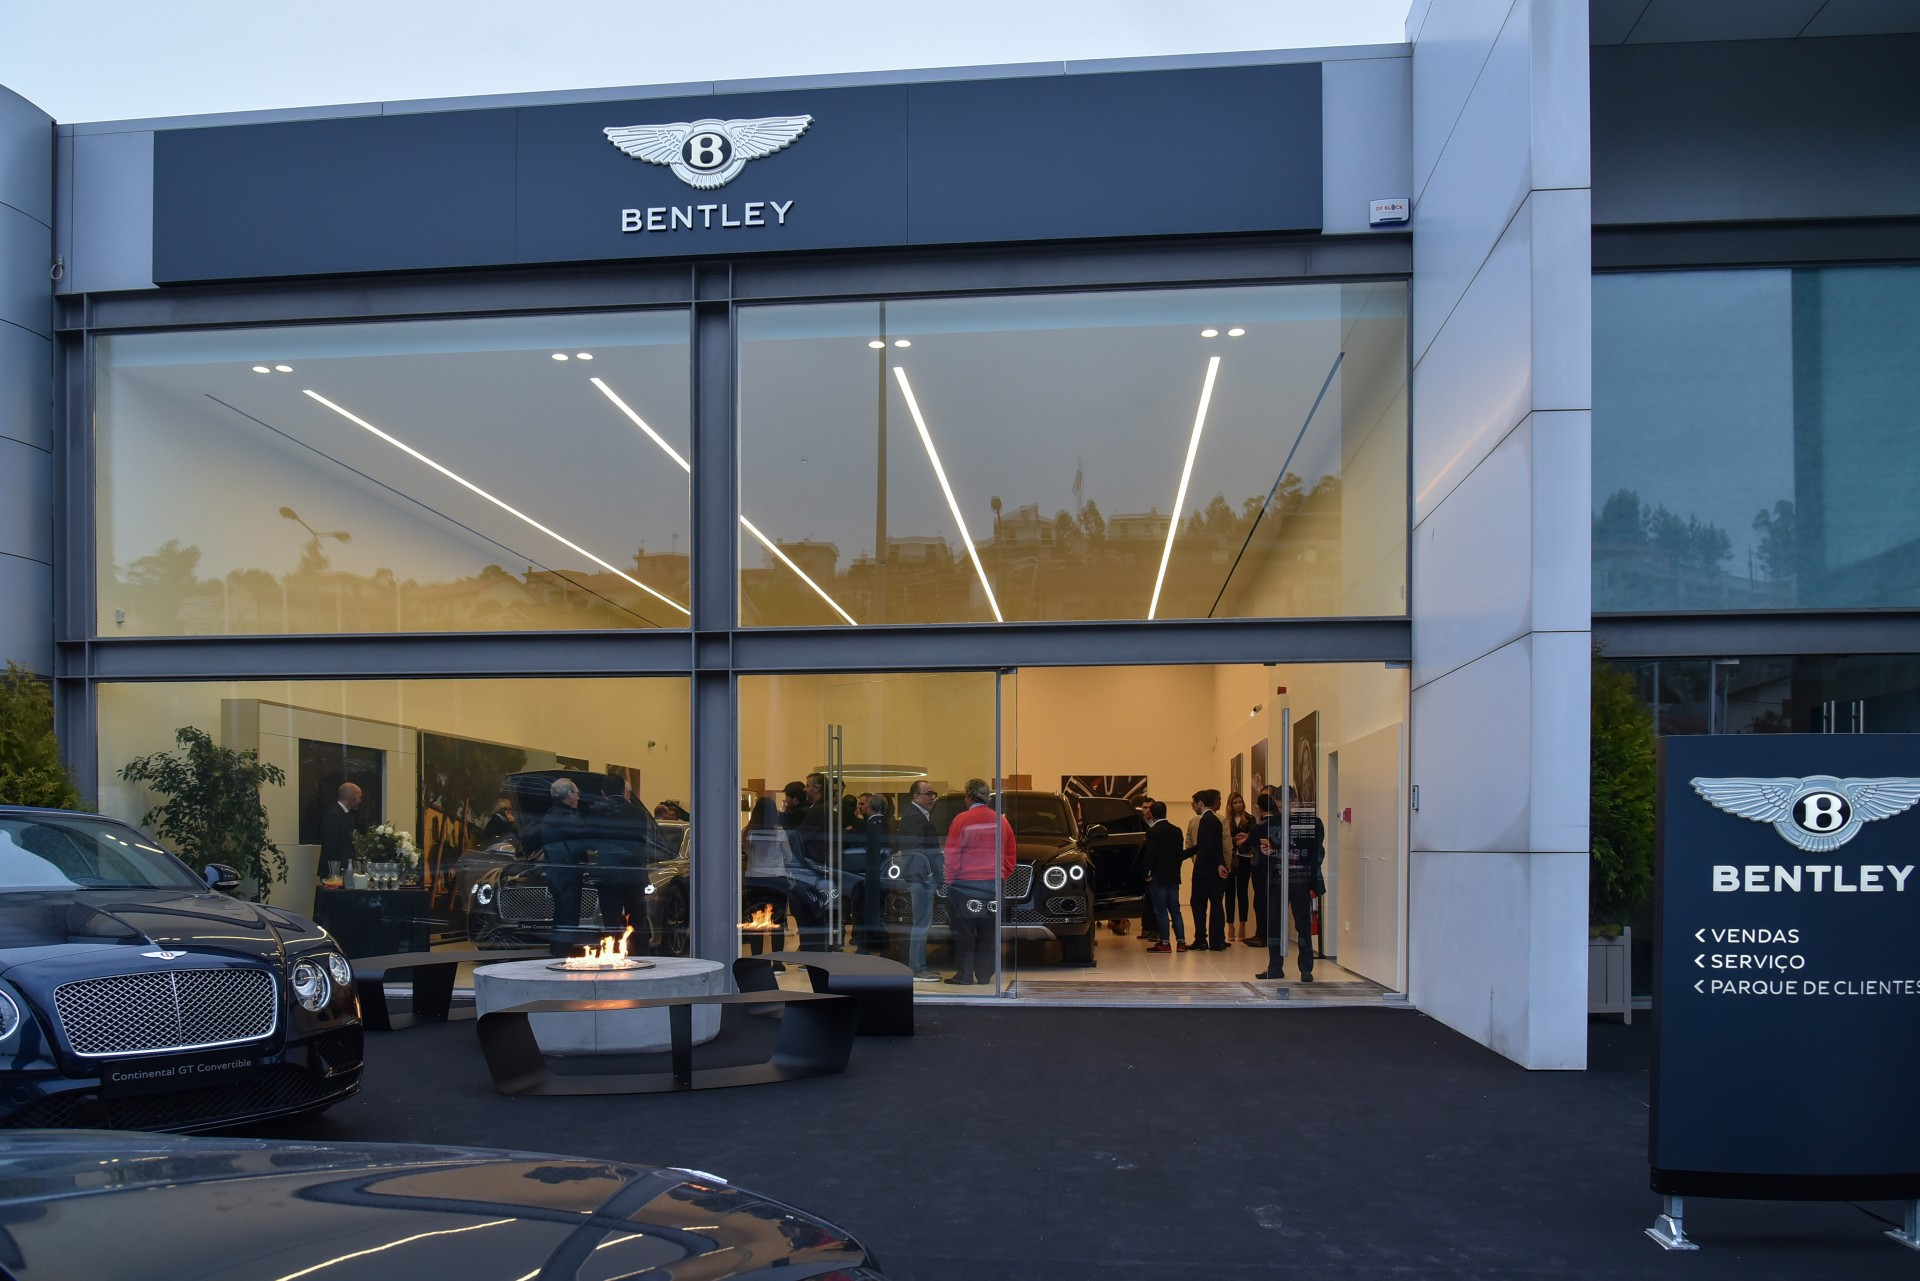 GlammFire and Bentley: successful partnership